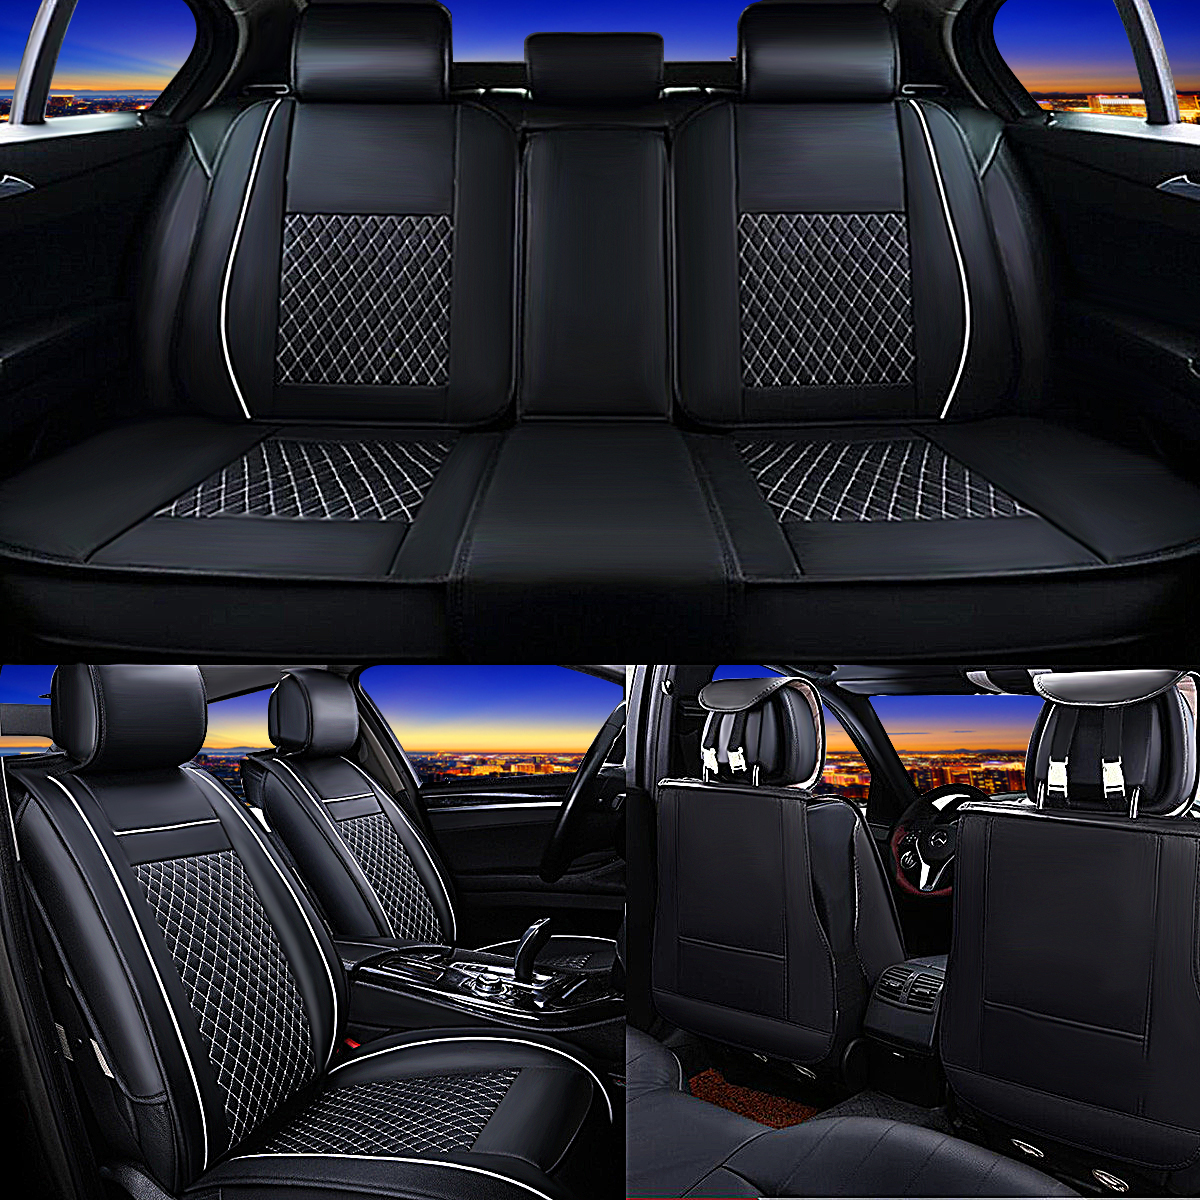 7Pcs Universal 5 Seat Cover Leather Car Front + Rear Cushion Pad + Armrest Case For Four Seasons